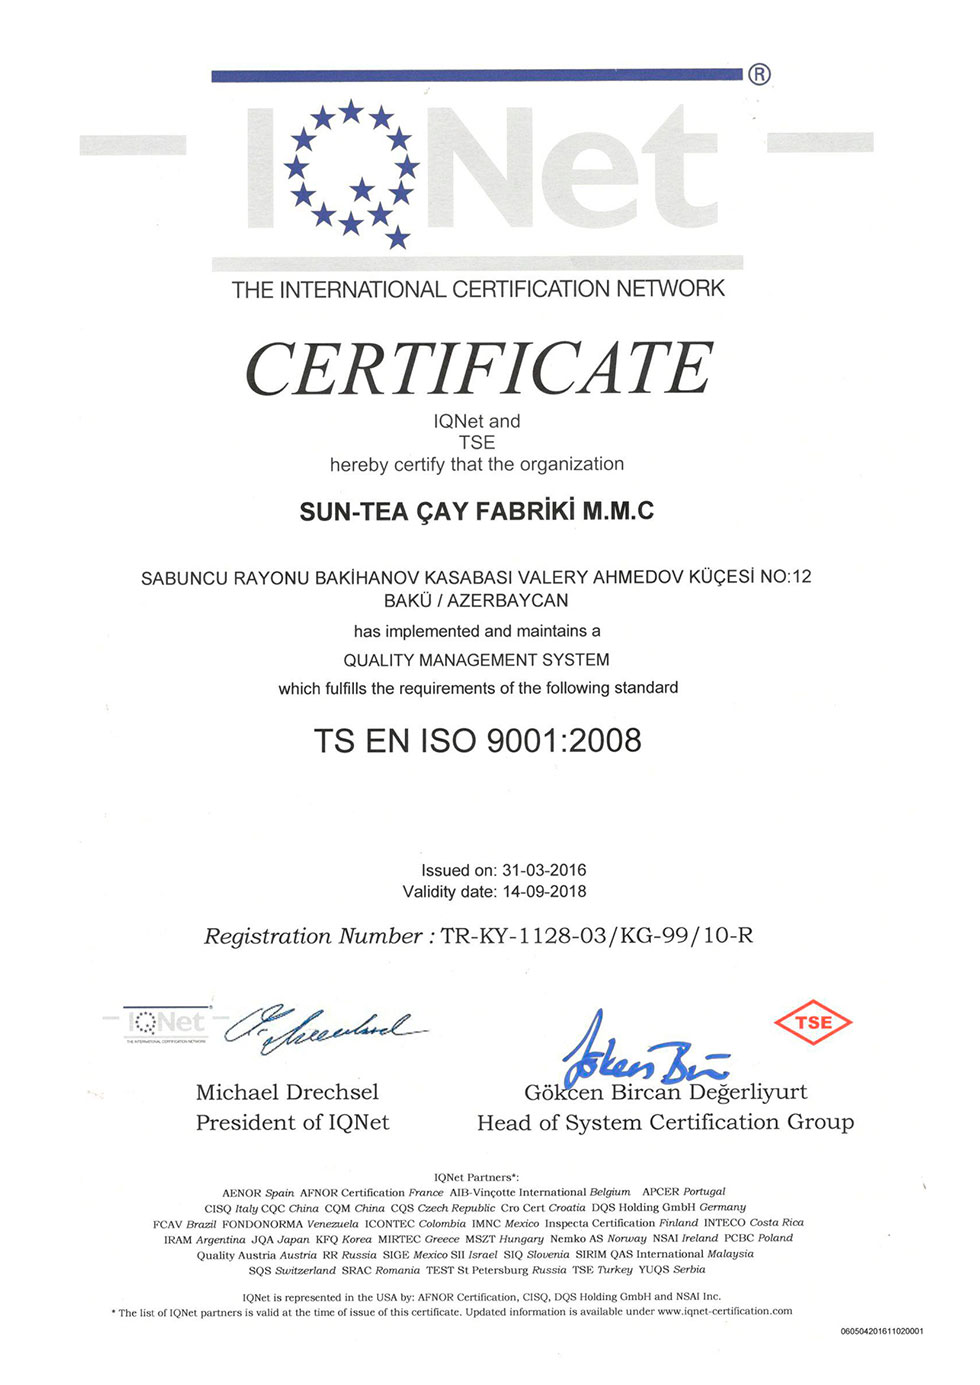 Certificate of Quality Management System